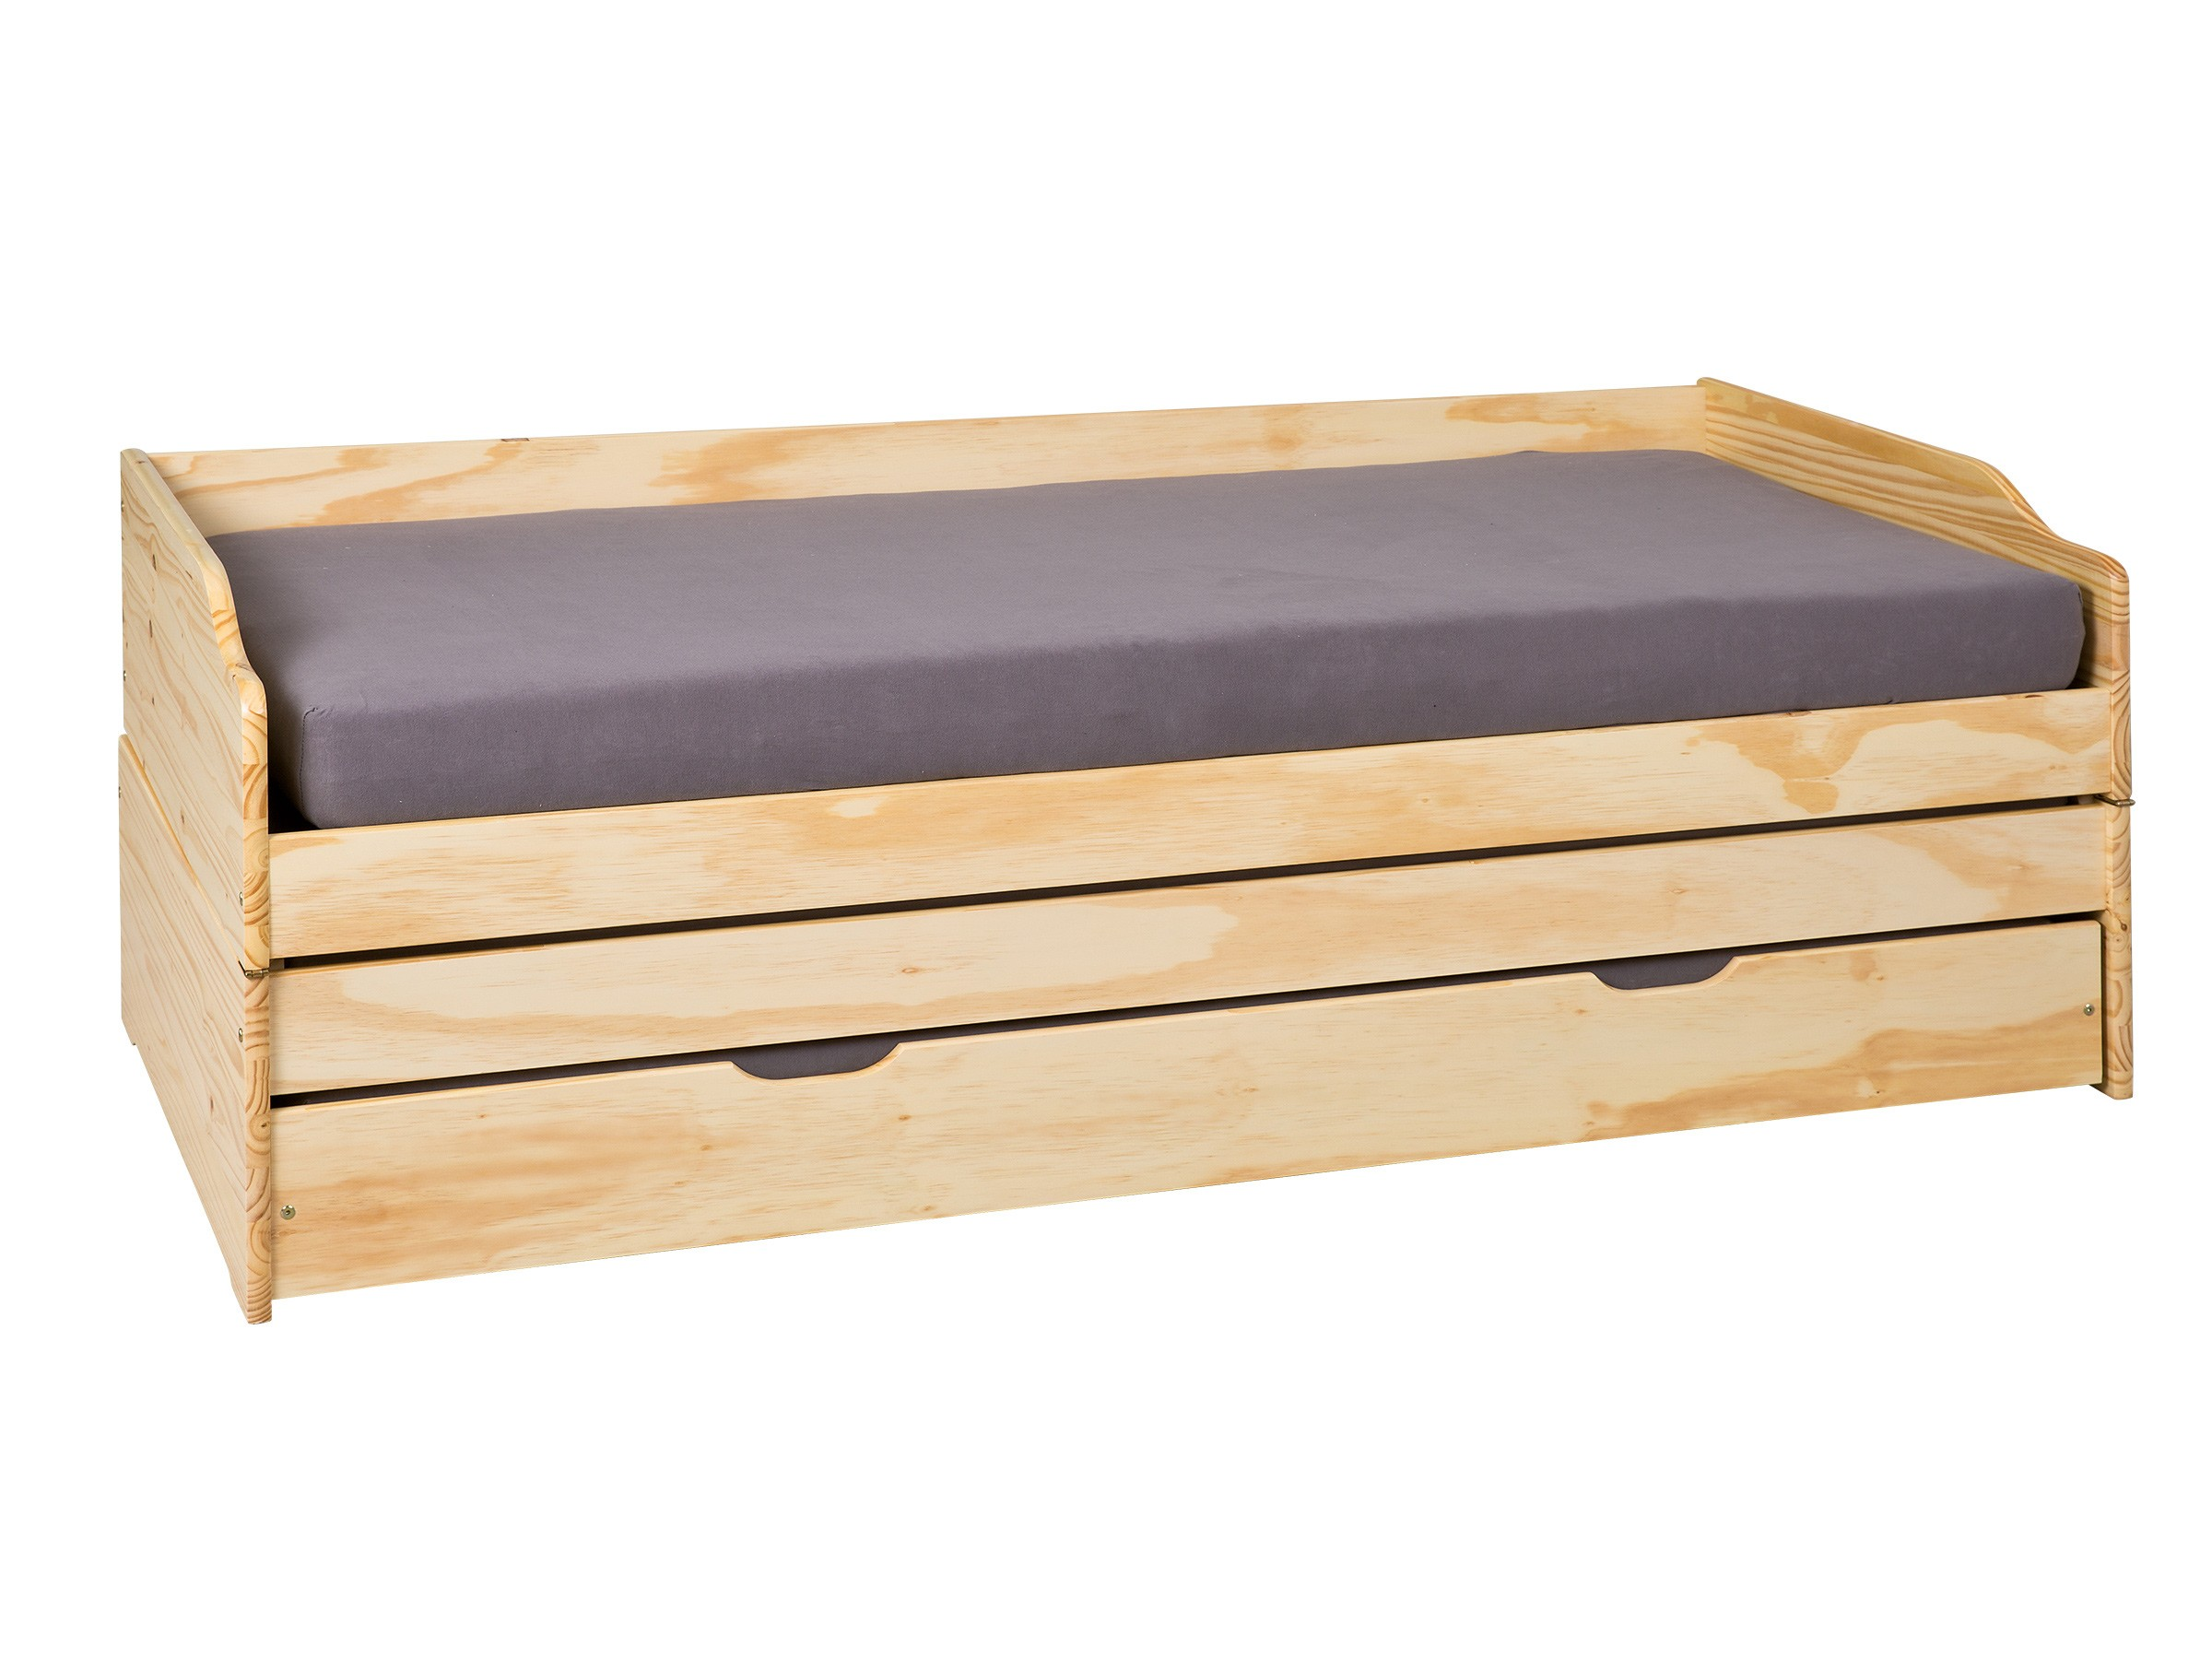 Banquette-lit enfant contemporaine en pin massif naturel Ingenio